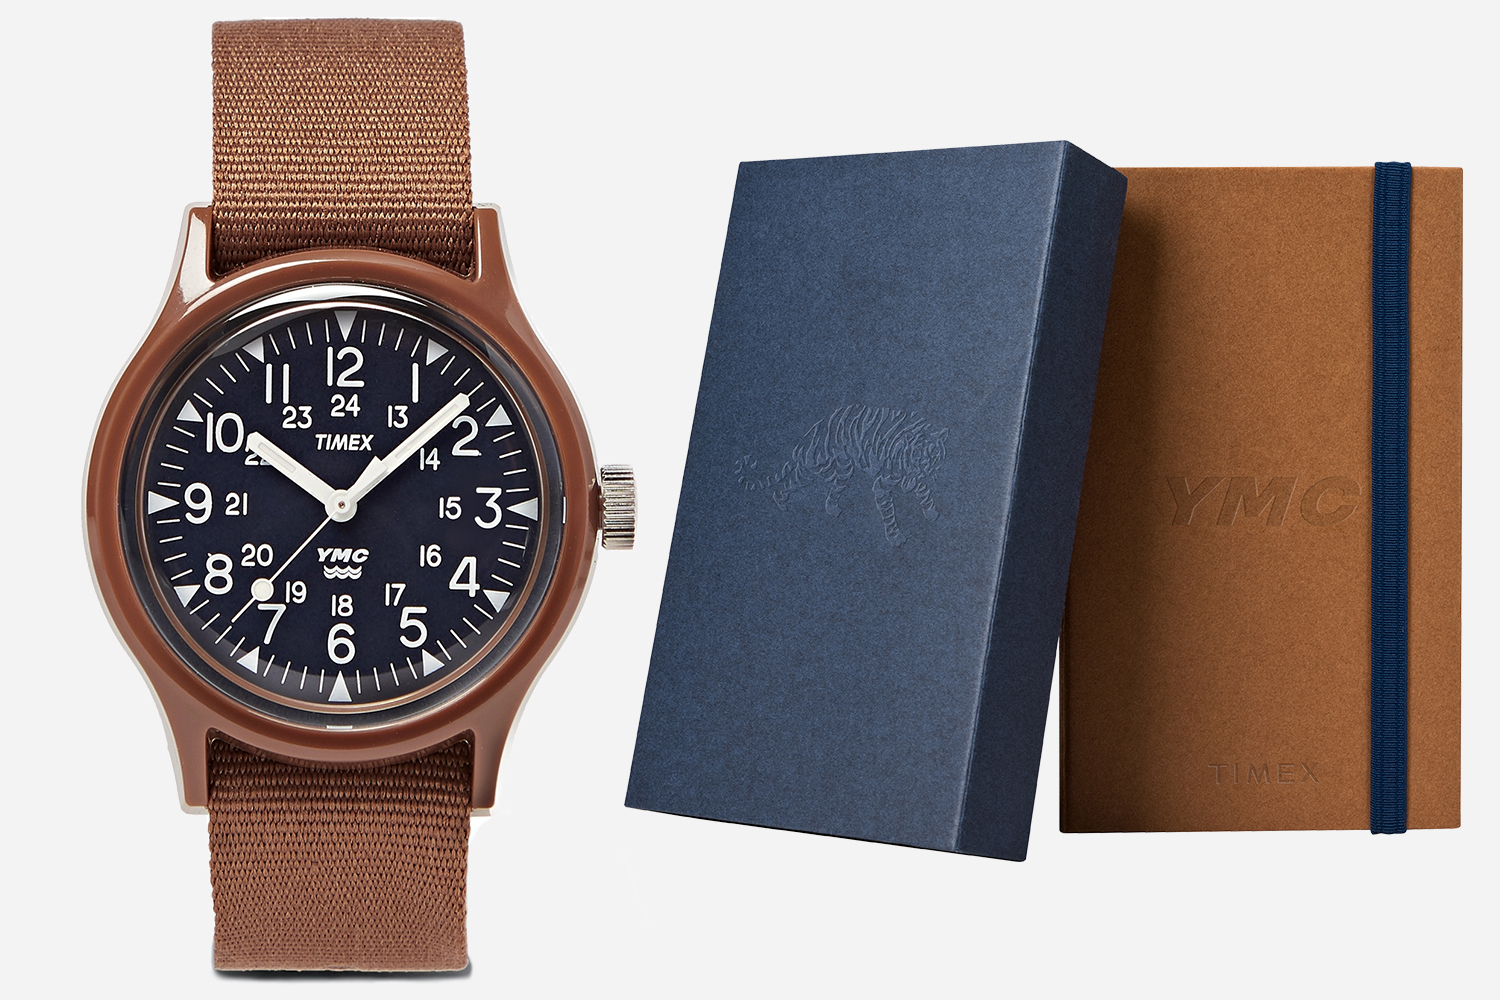 Timex Teamed Up With YMC to Update Its U.S. Marine Corps Watch - InsideHook